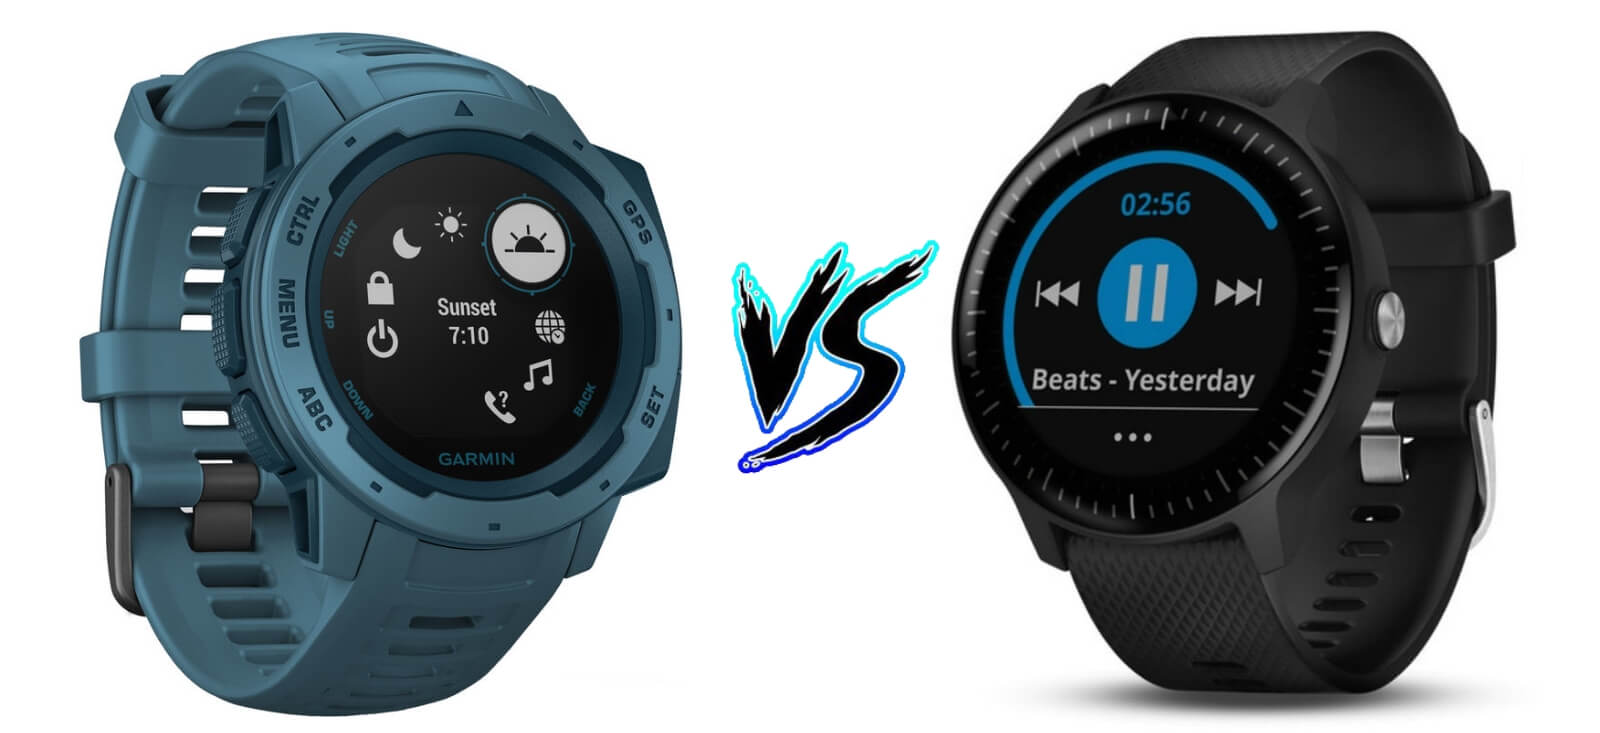 Garmin_Instinct vs Vivoactive 3 Music